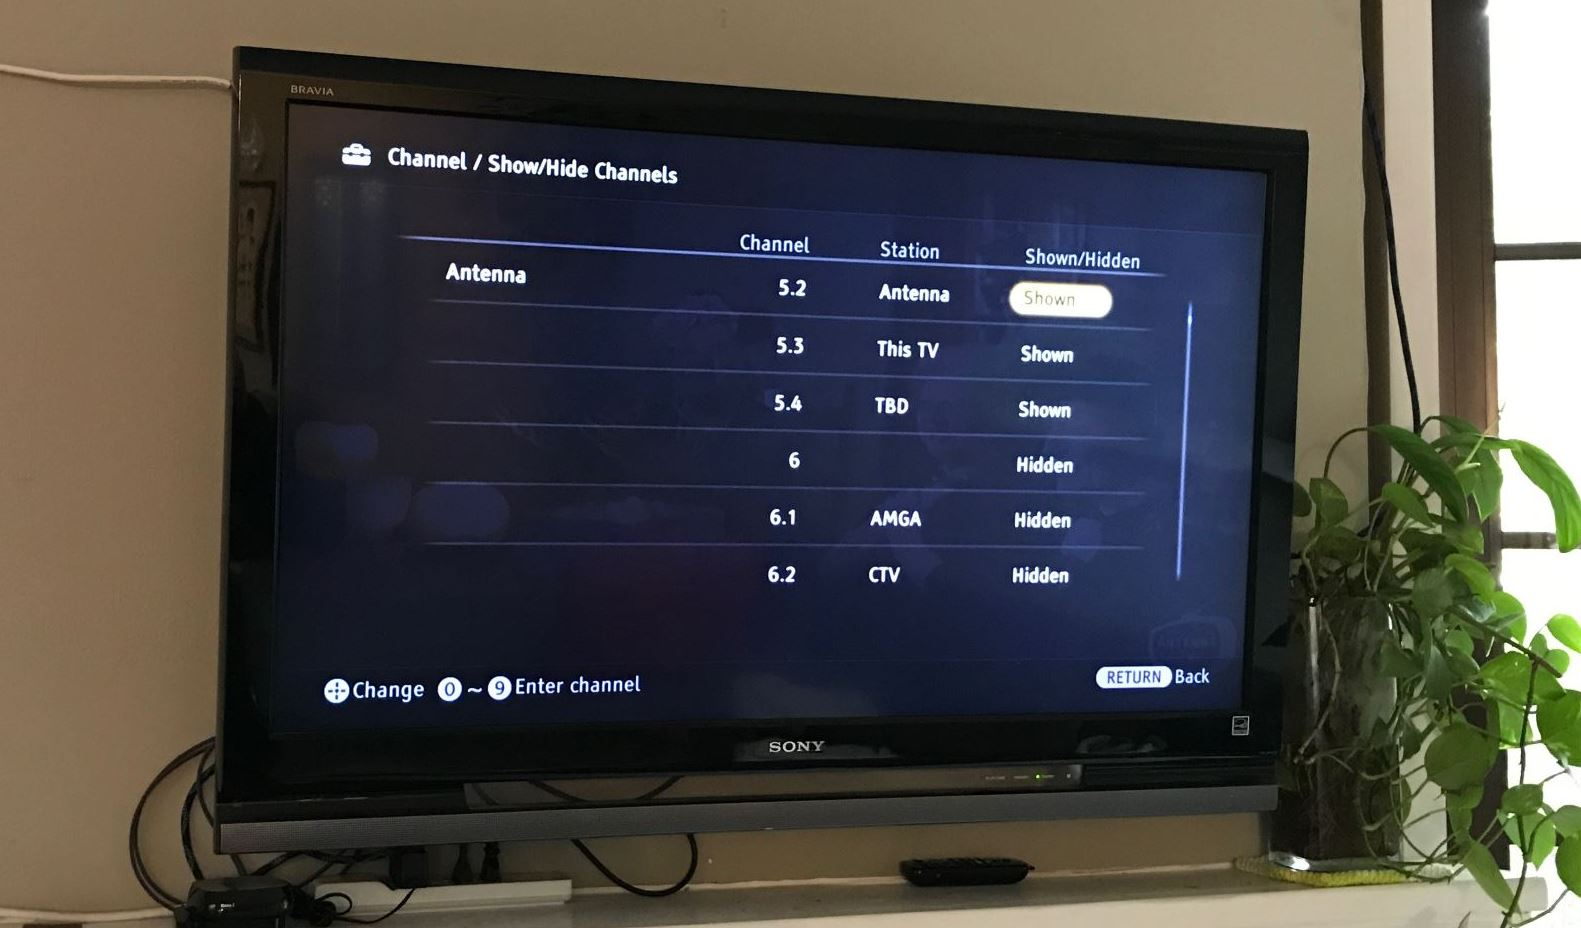 Hiding a channel on the Sony Bravia TV